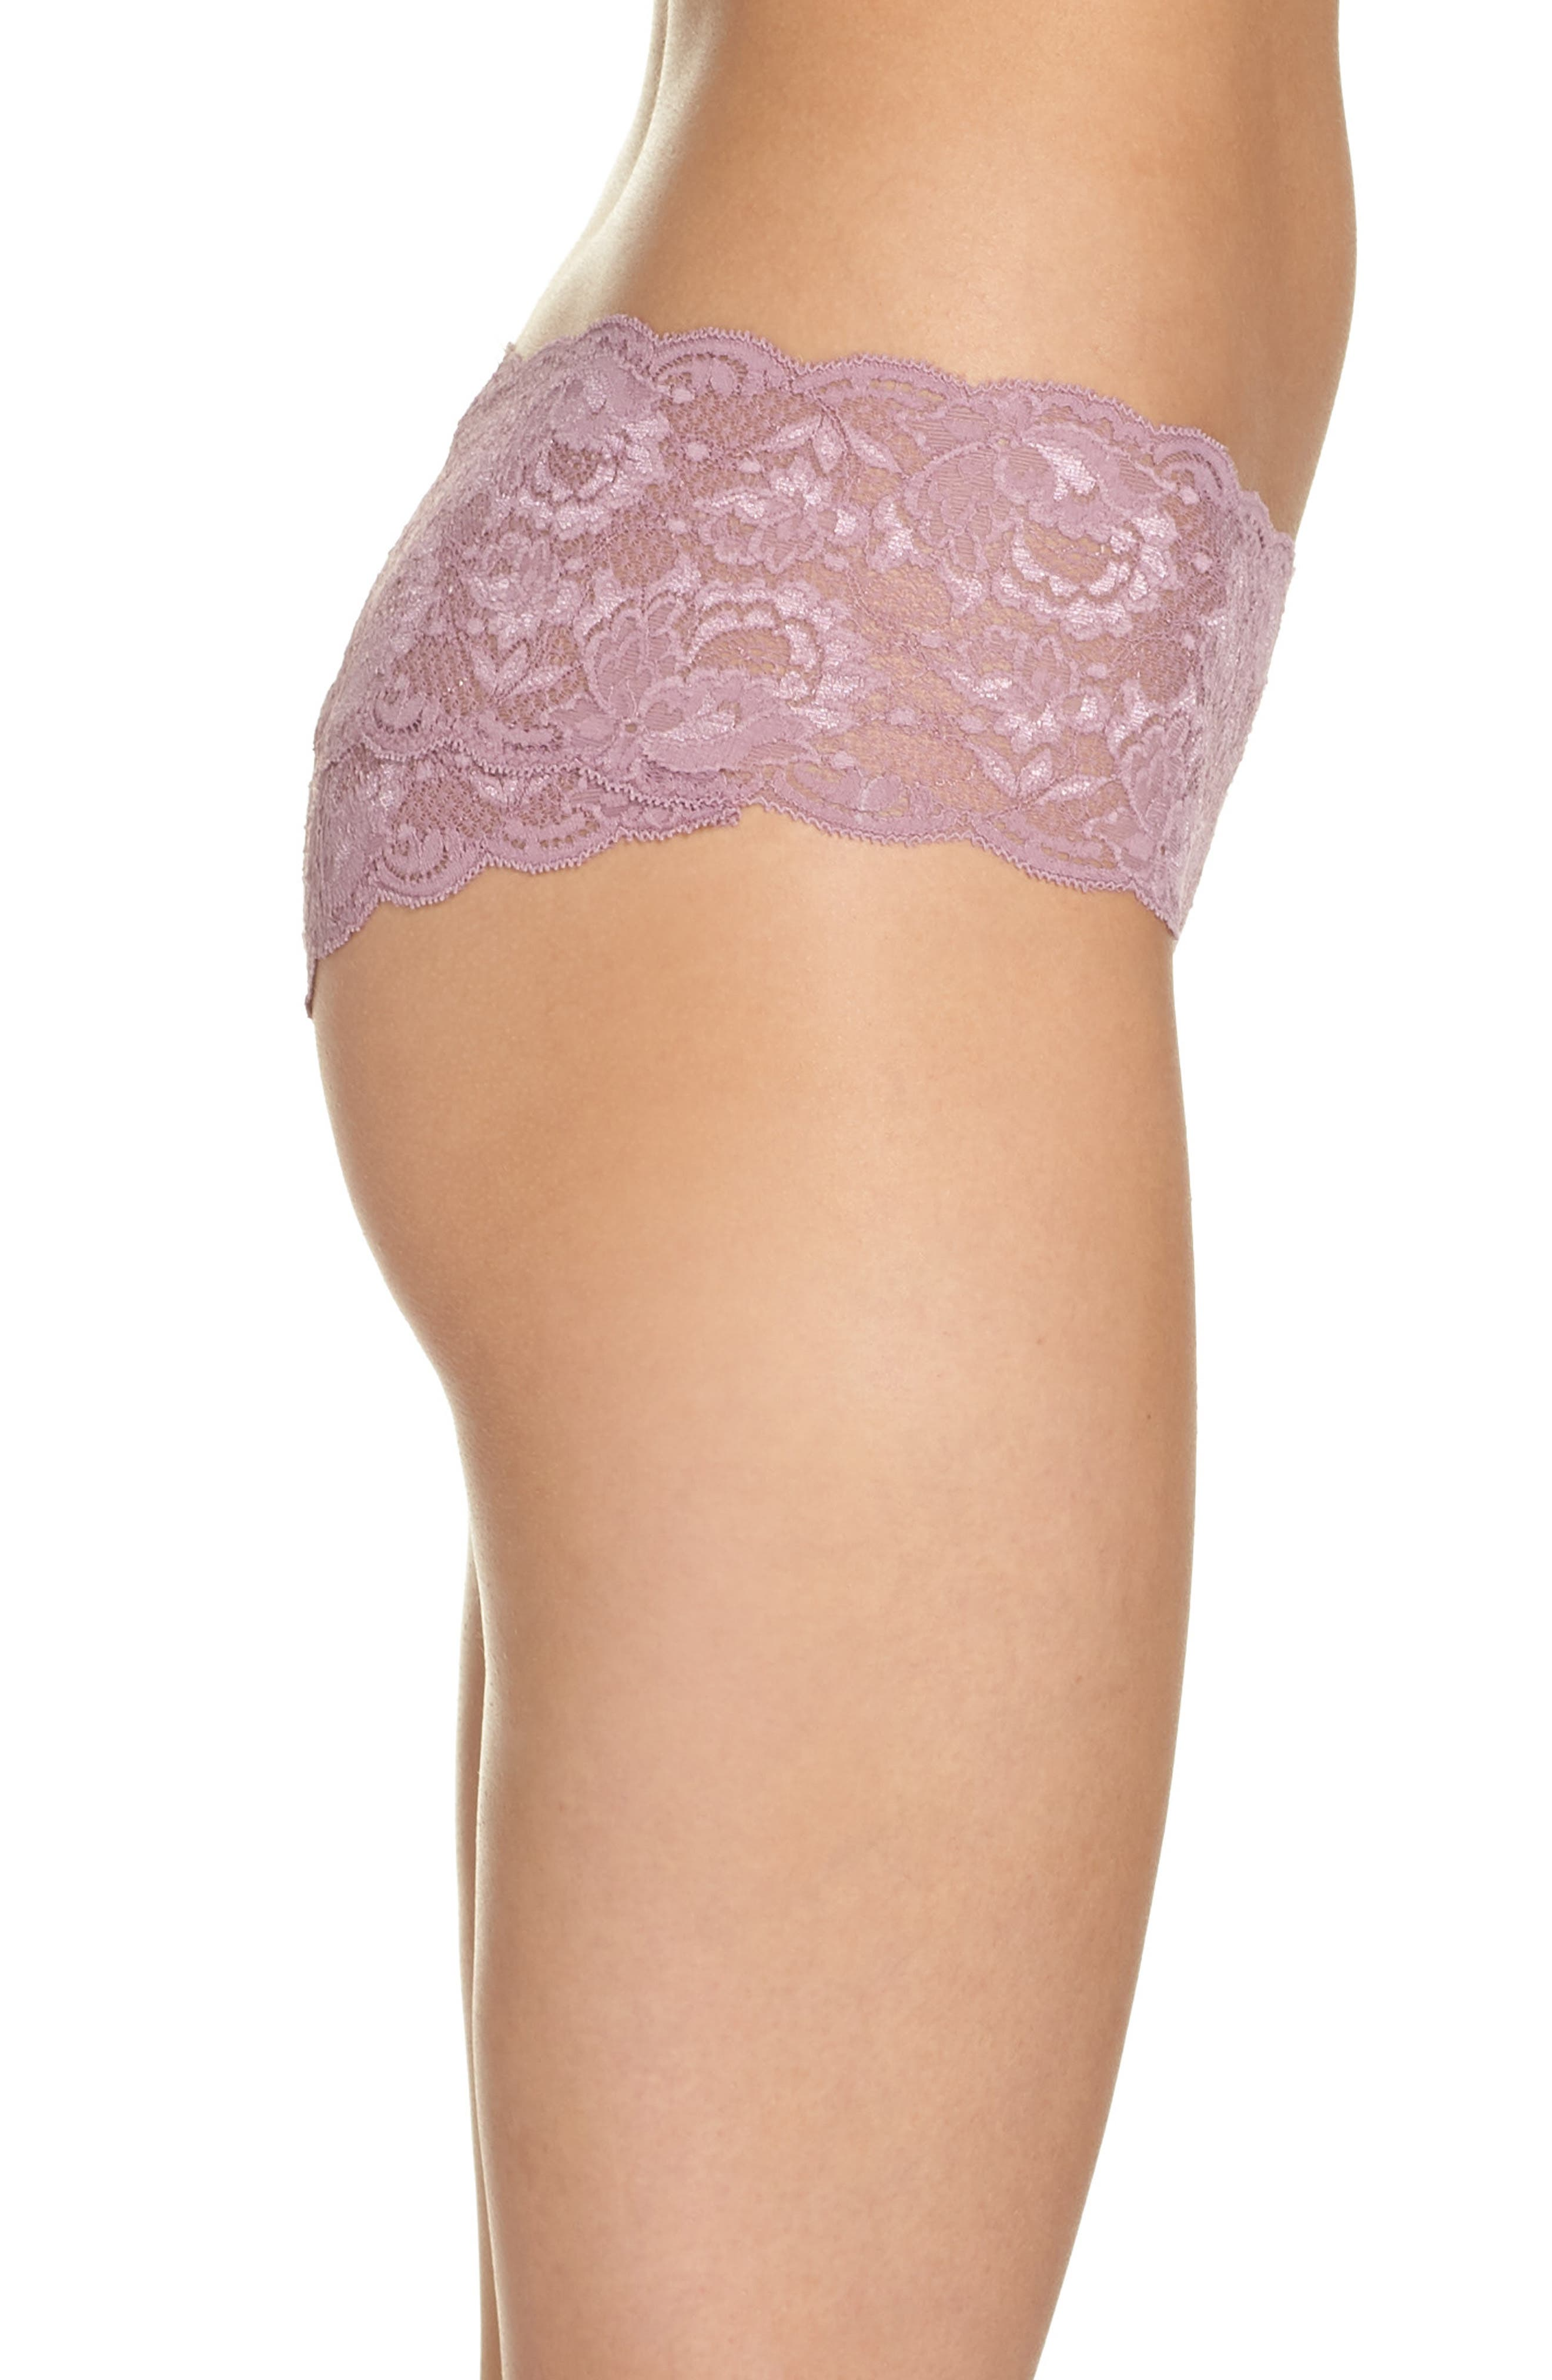 'Never Say Never' Hipster Briefs,                             Alternate thumbnail 4, color,                             Grape